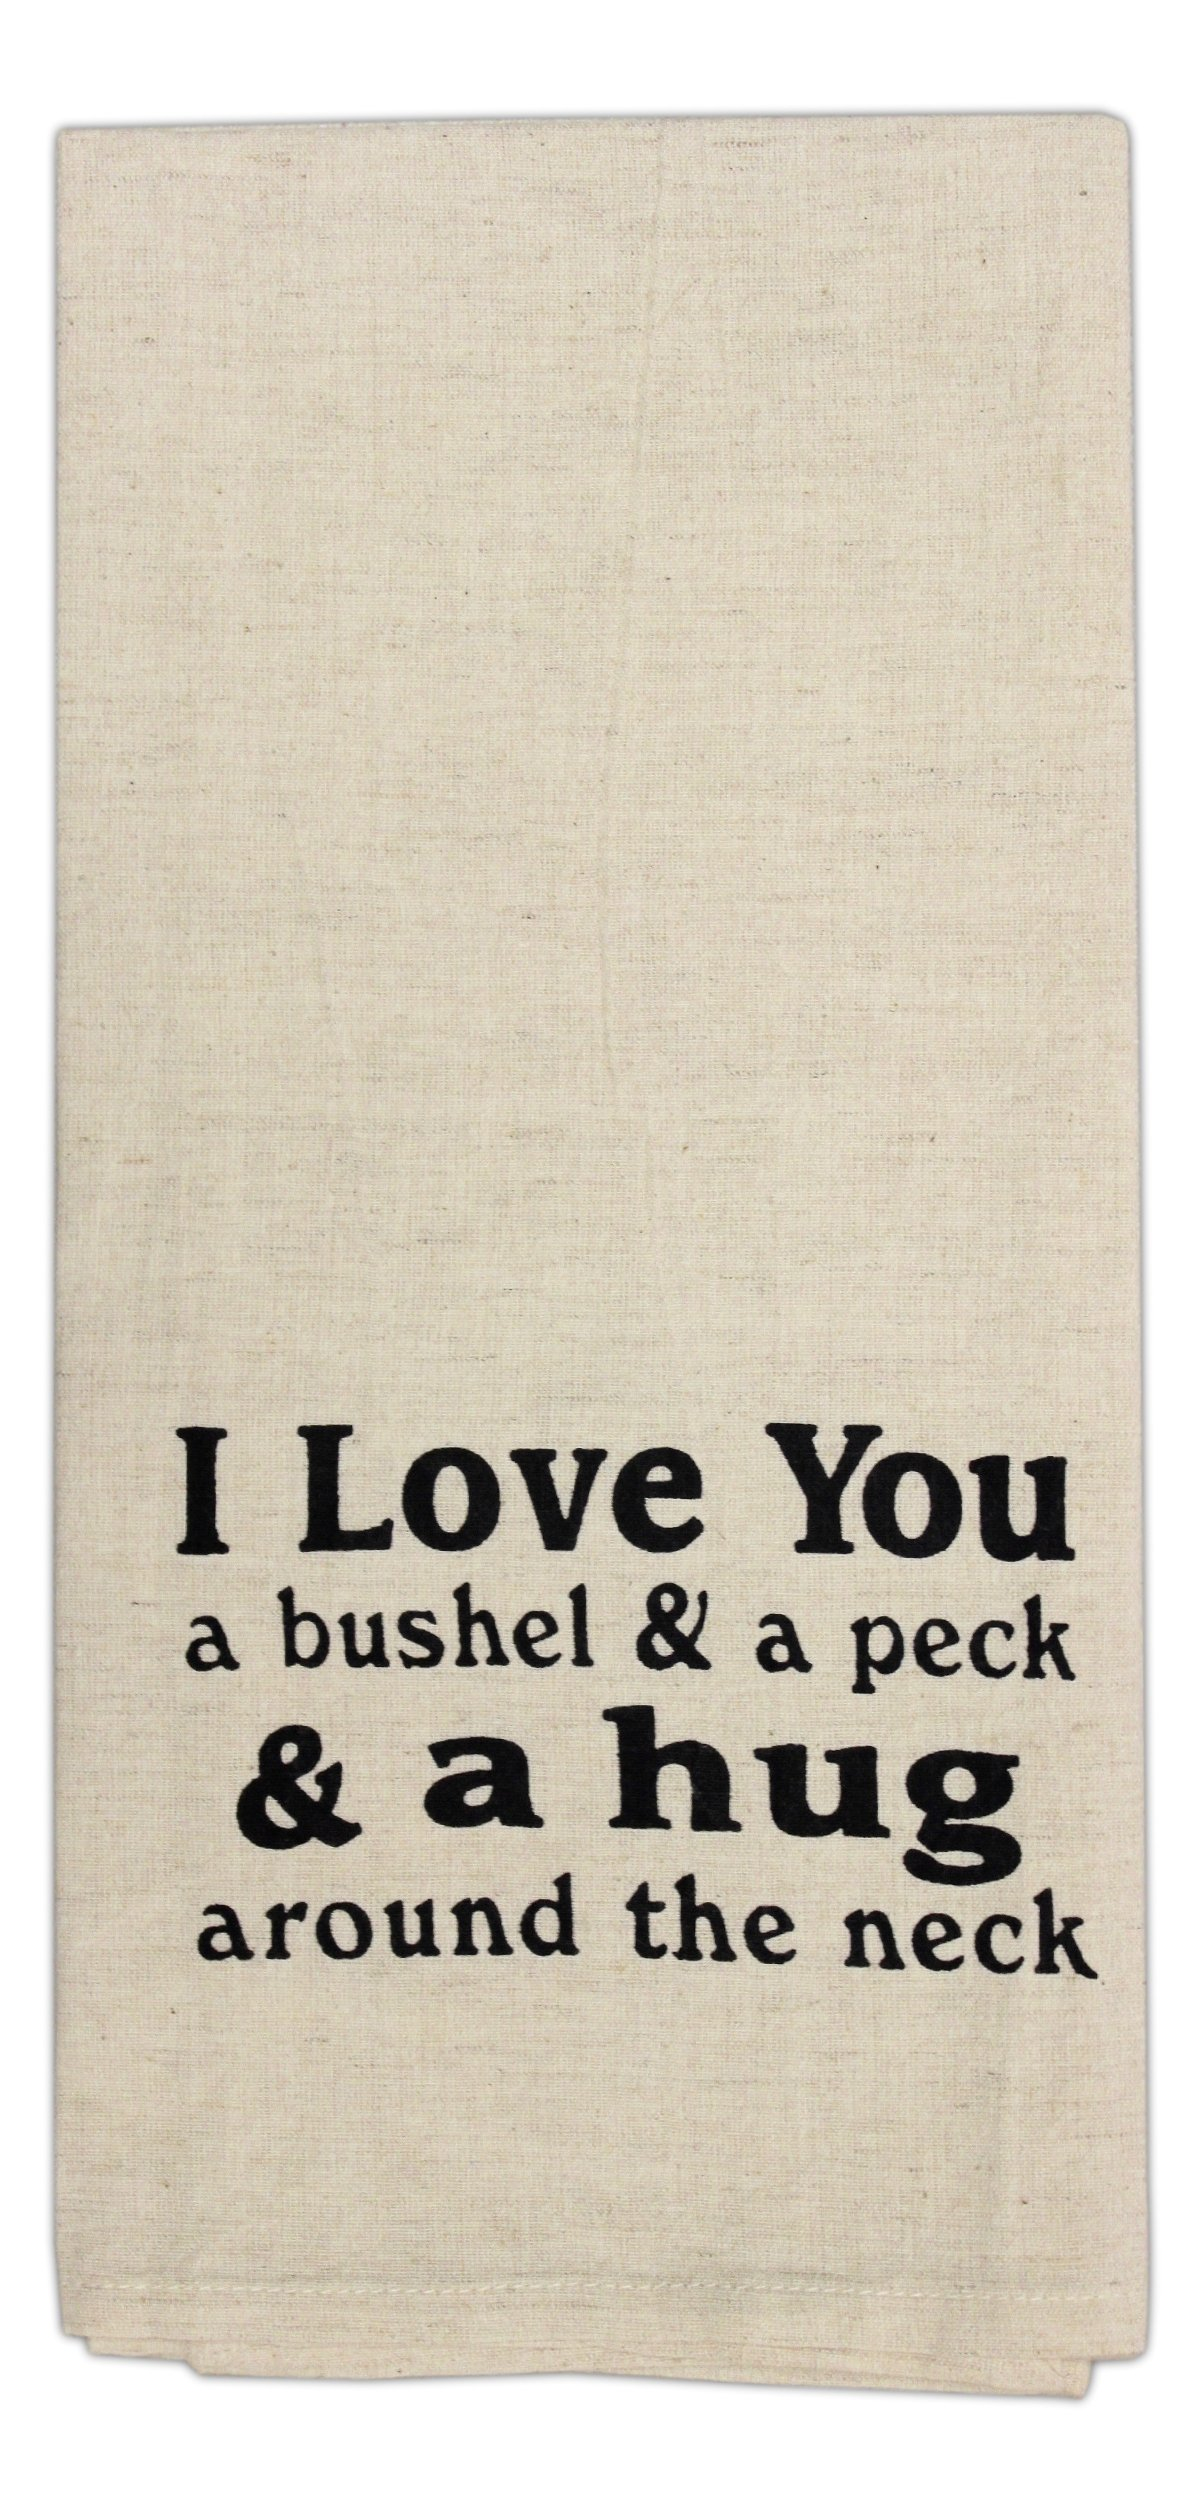 Country House Collection 19'' x 28'' Primitive Cotton Flax Hand Towel (I Love You a Bushel & a Peck)